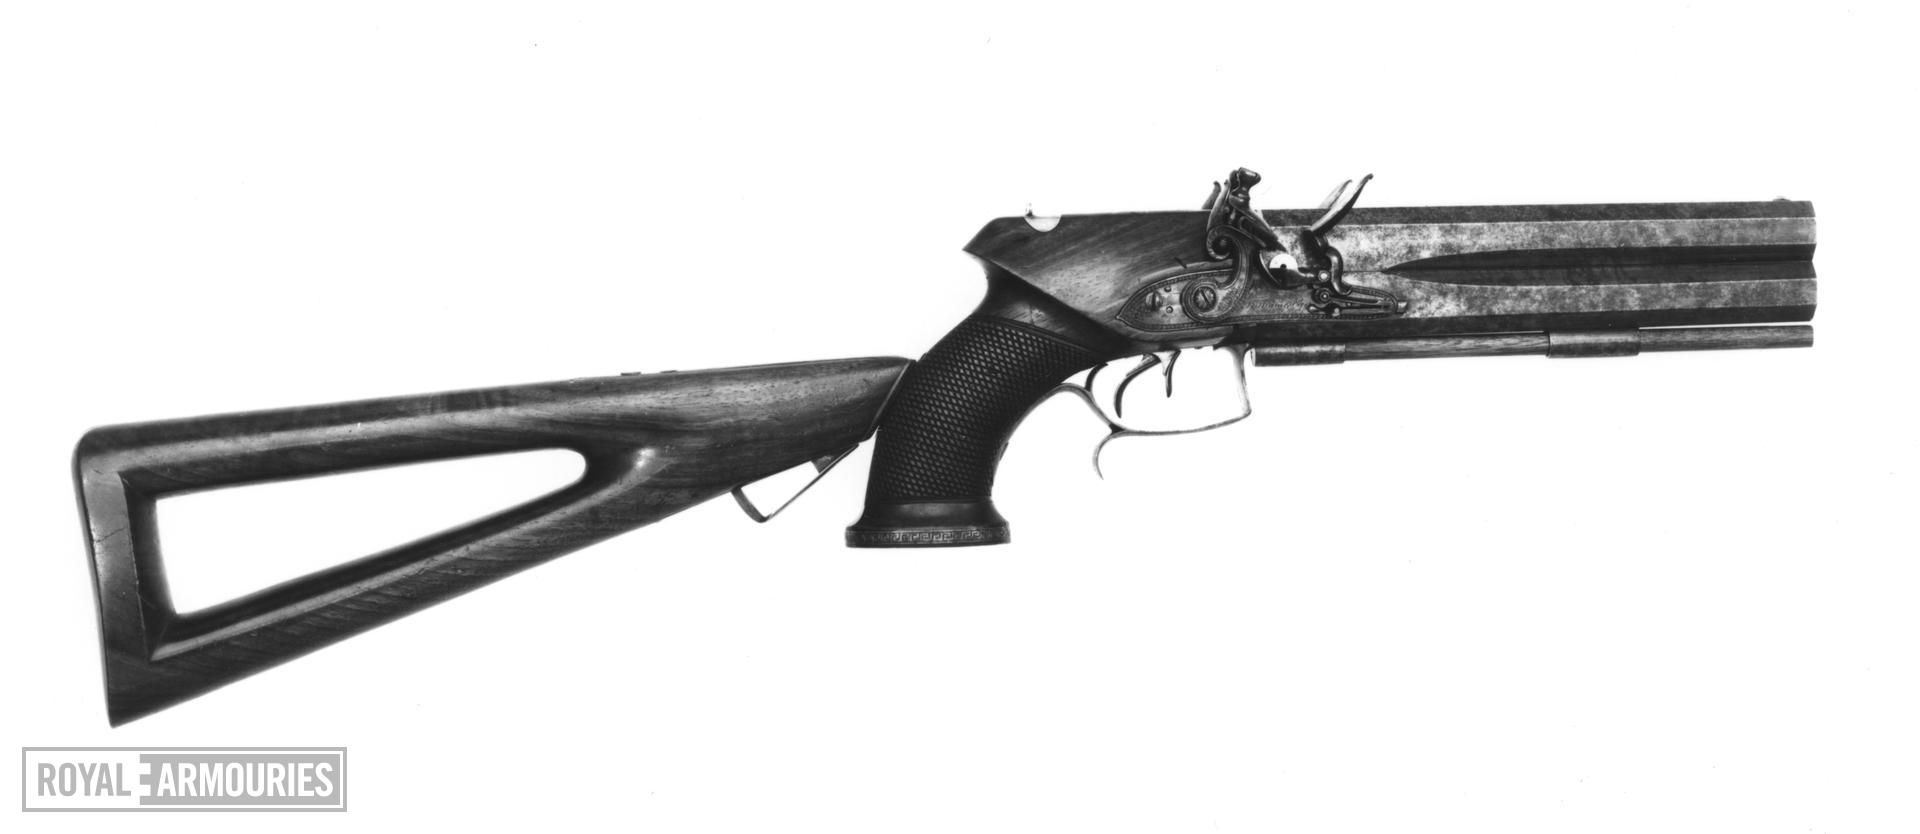 Flintlock double-barrelled pistol with detachable stock. English, about 1805. Made by Tatham and Egg (XII.1380)